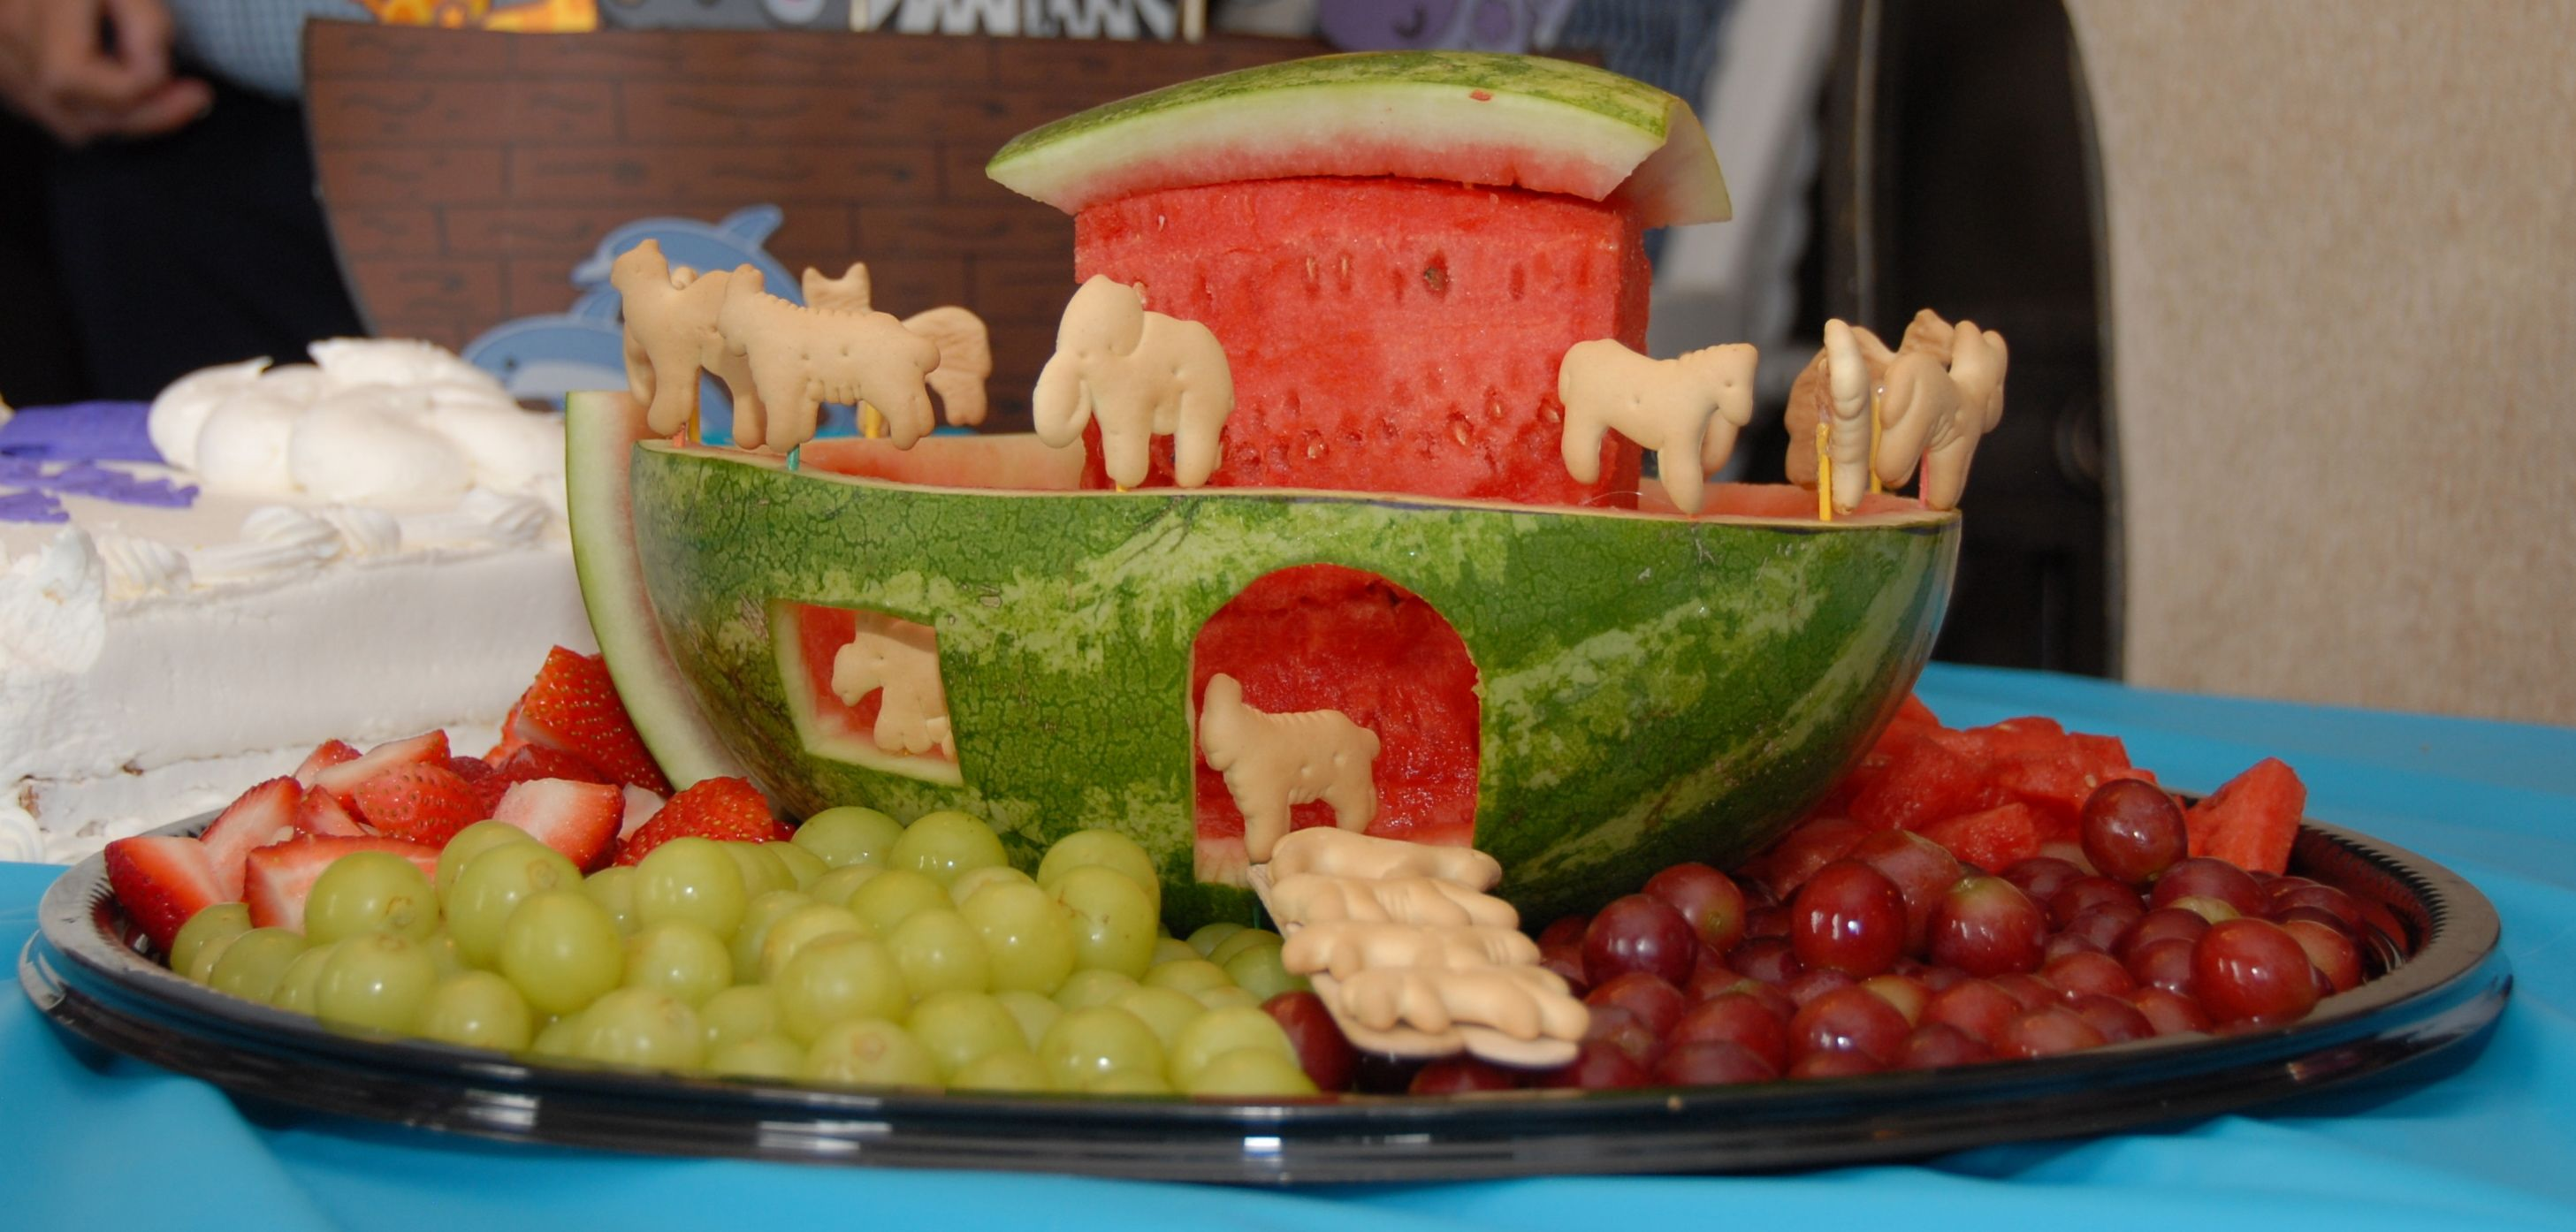 Fruit Themed Kitchen Decor Collection Kevin Made This For Luke 39s Quotnoah 39s Ark Quot Themed Baptism